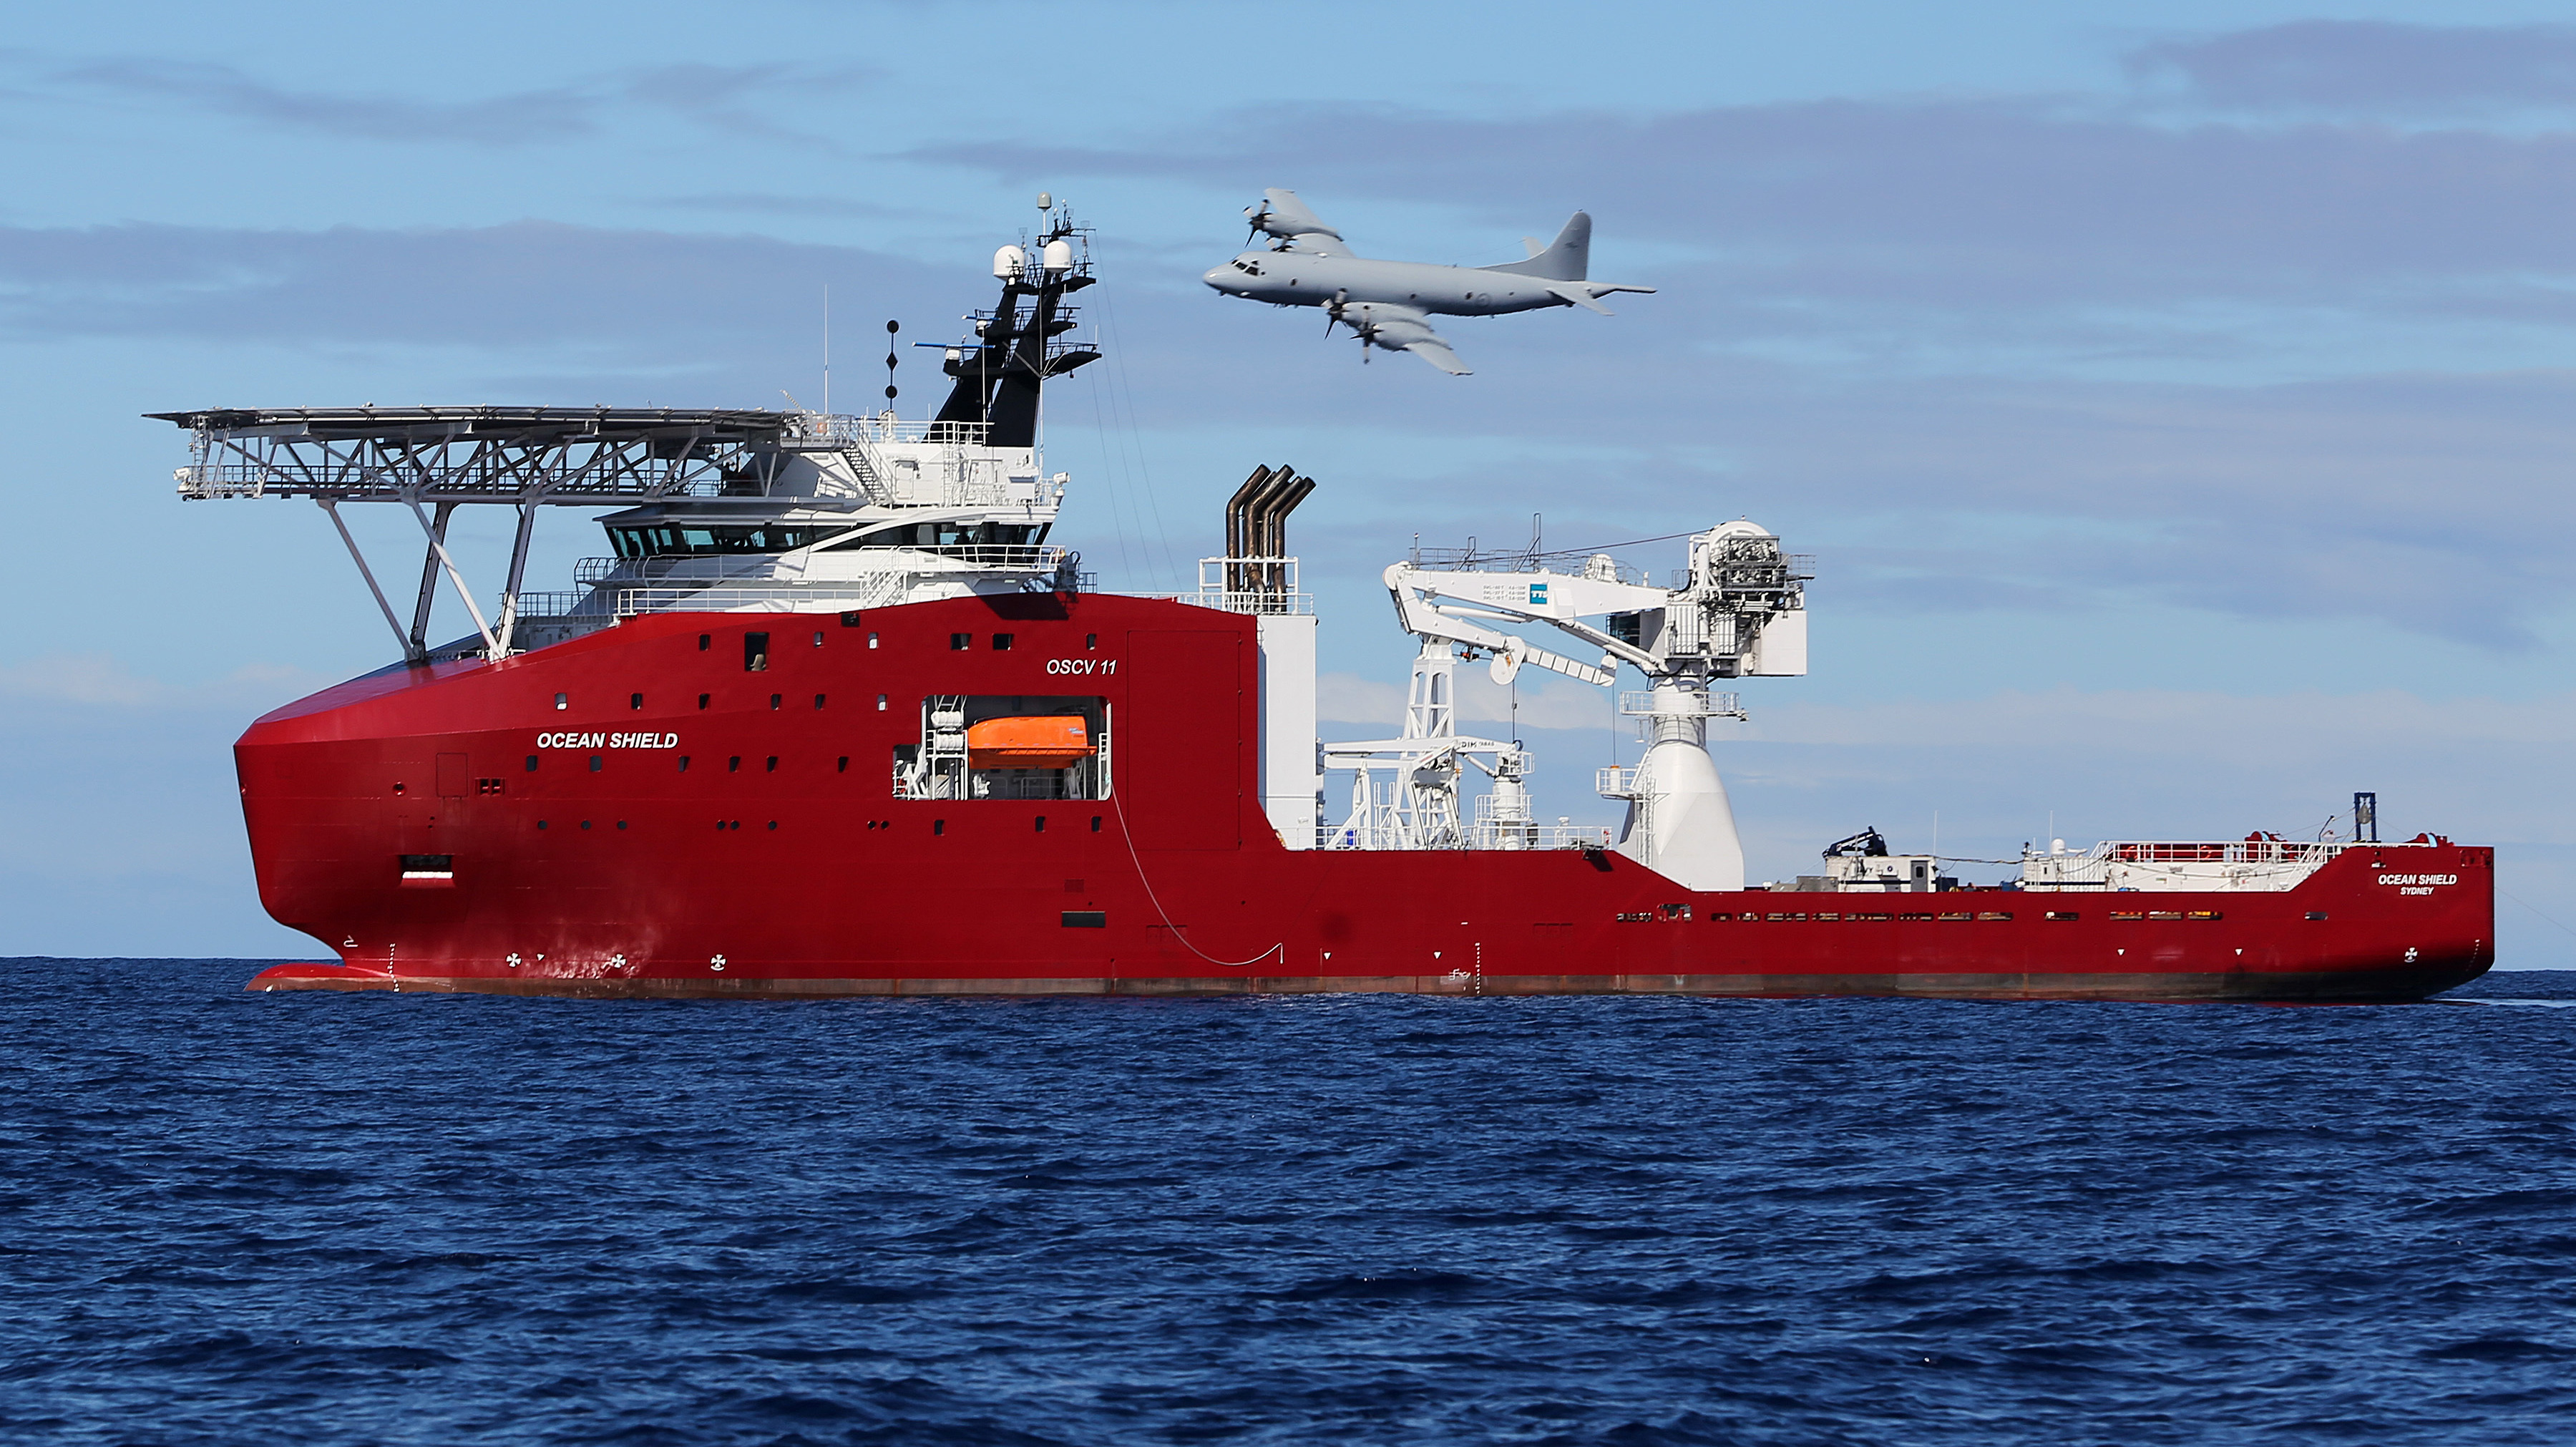 New Pings Have Head Of Search Optimistic Jet Will Soon Be Found